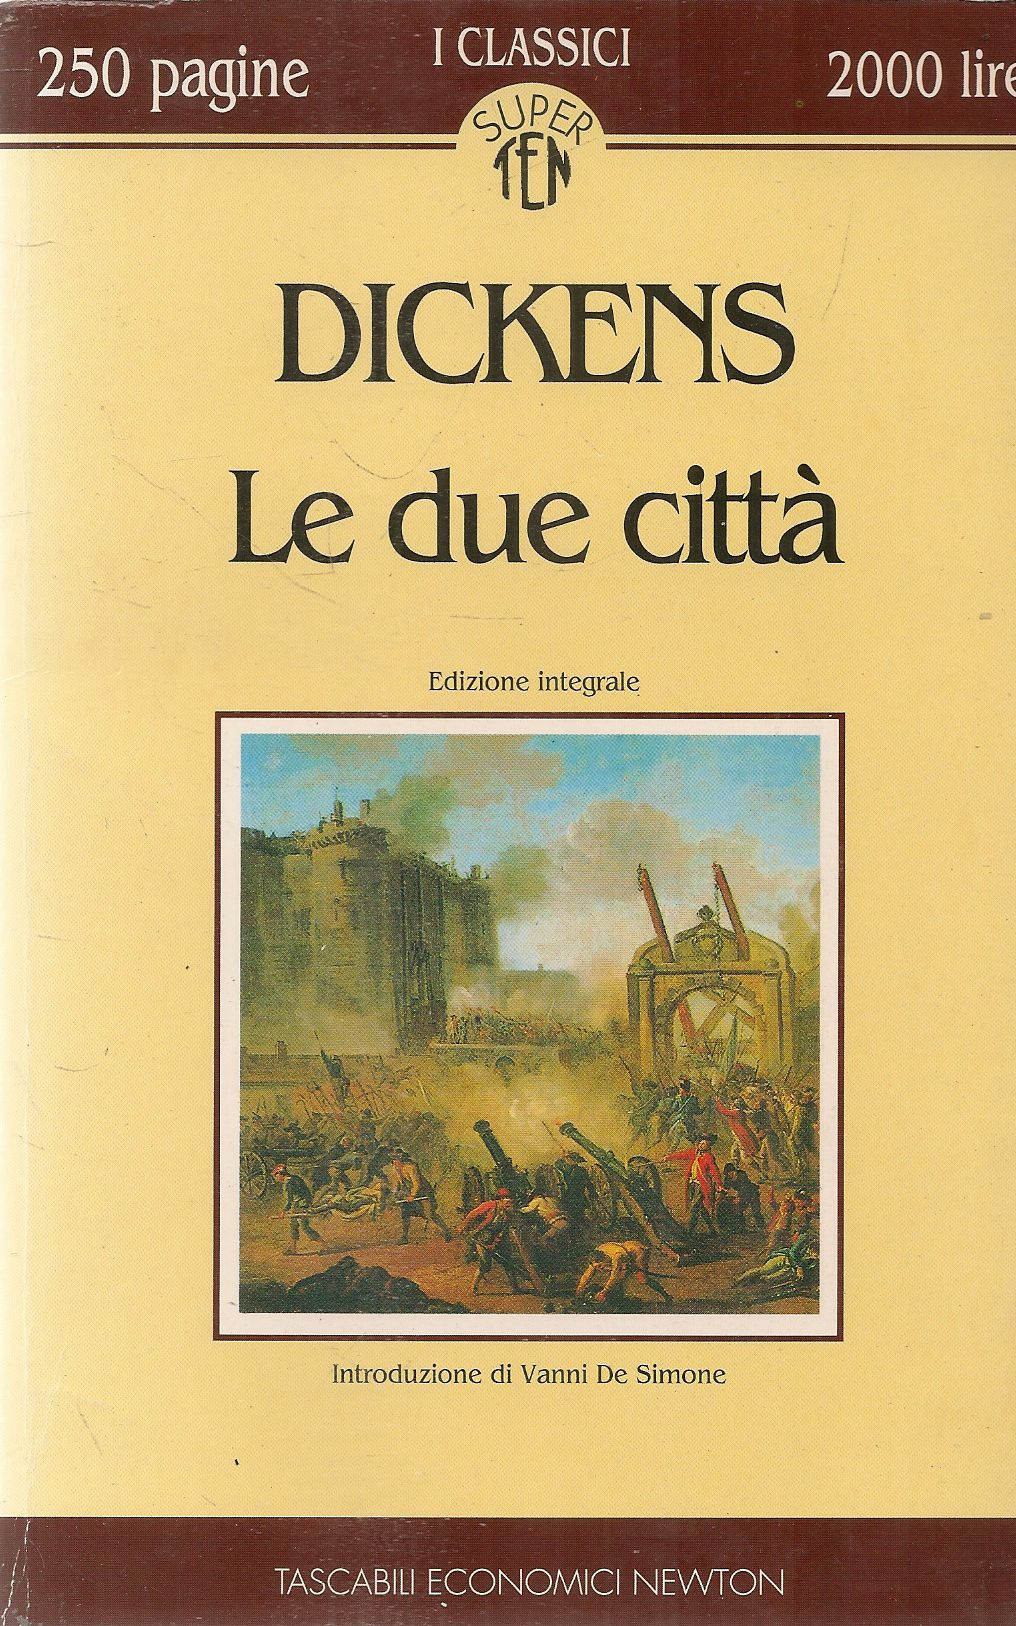 LE DUE CITTA' - CHARLES DICKENS